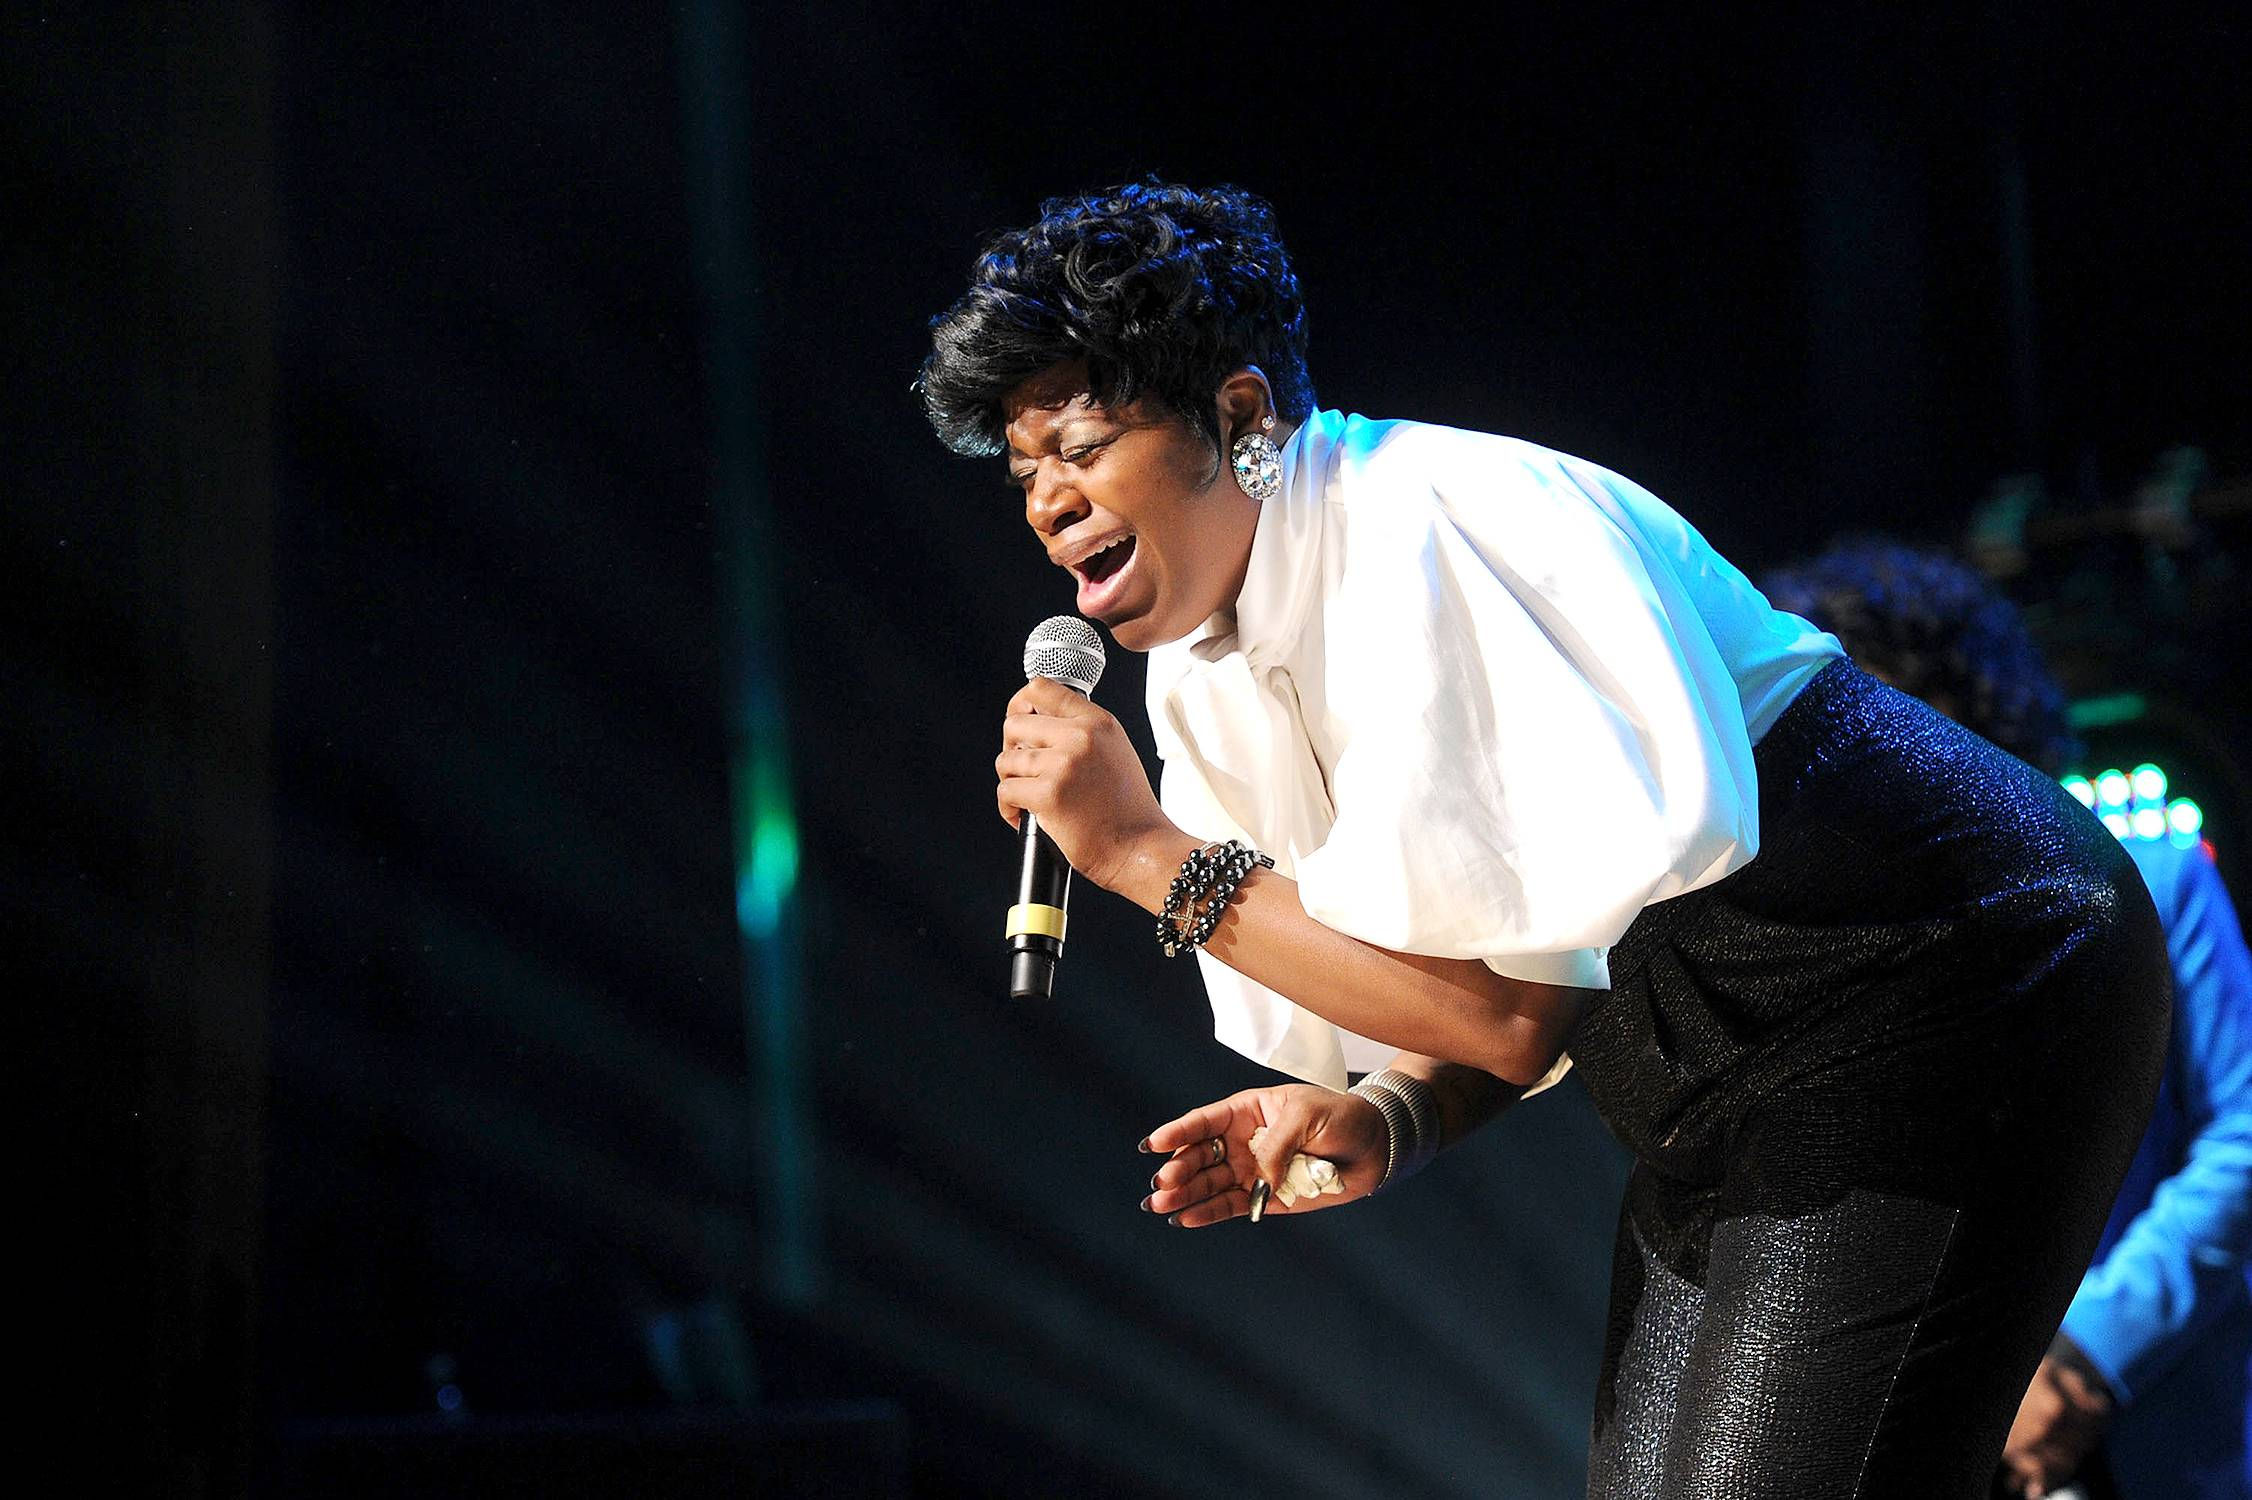 Deep In My Soul - Fantasia Barrino performs during the Super Bowl Gospel Celebration 2012 at Clowes Memorial Hall of Butler University in Indianapolis. (Photo: Rick Diamond/Getty Images for Super Bowl)